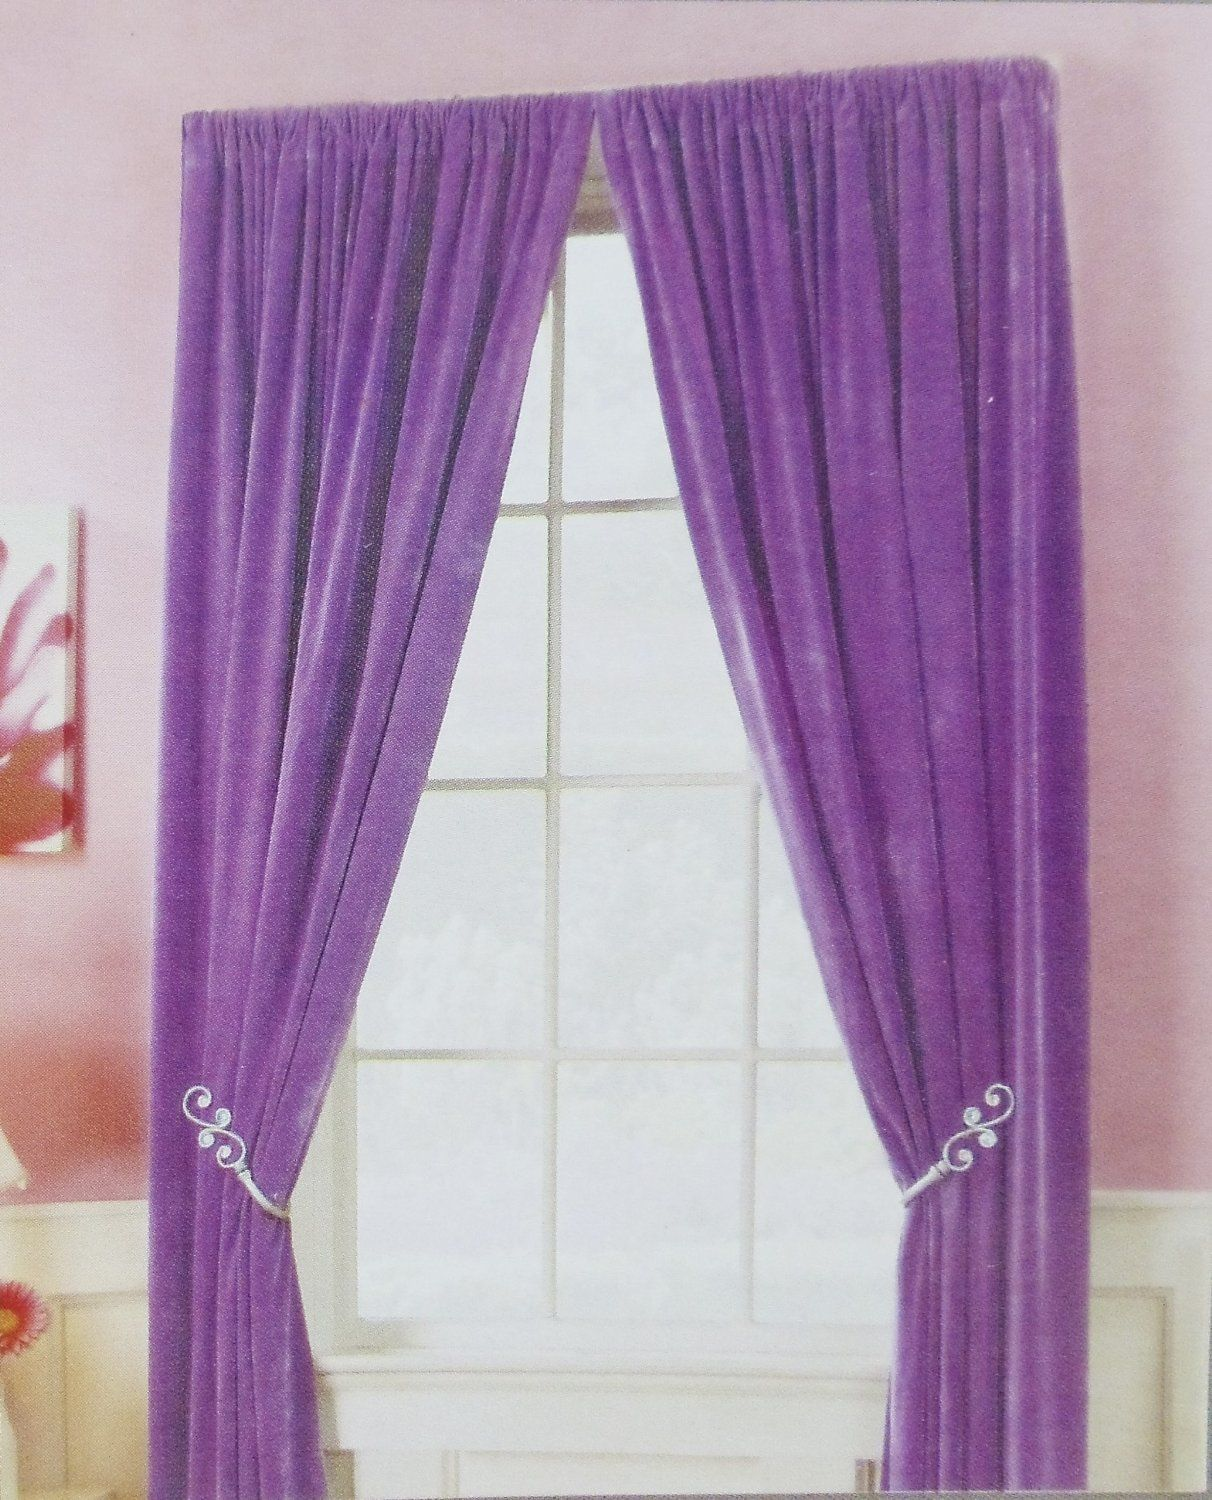 Pink bedroom curtain design - 15 Beautiful Bedroom Designs With Purple Curtain Captivating Purple Bedroom Curtain In Sweet Girls Bedroom With Light Pink Wall Painting And Artistic